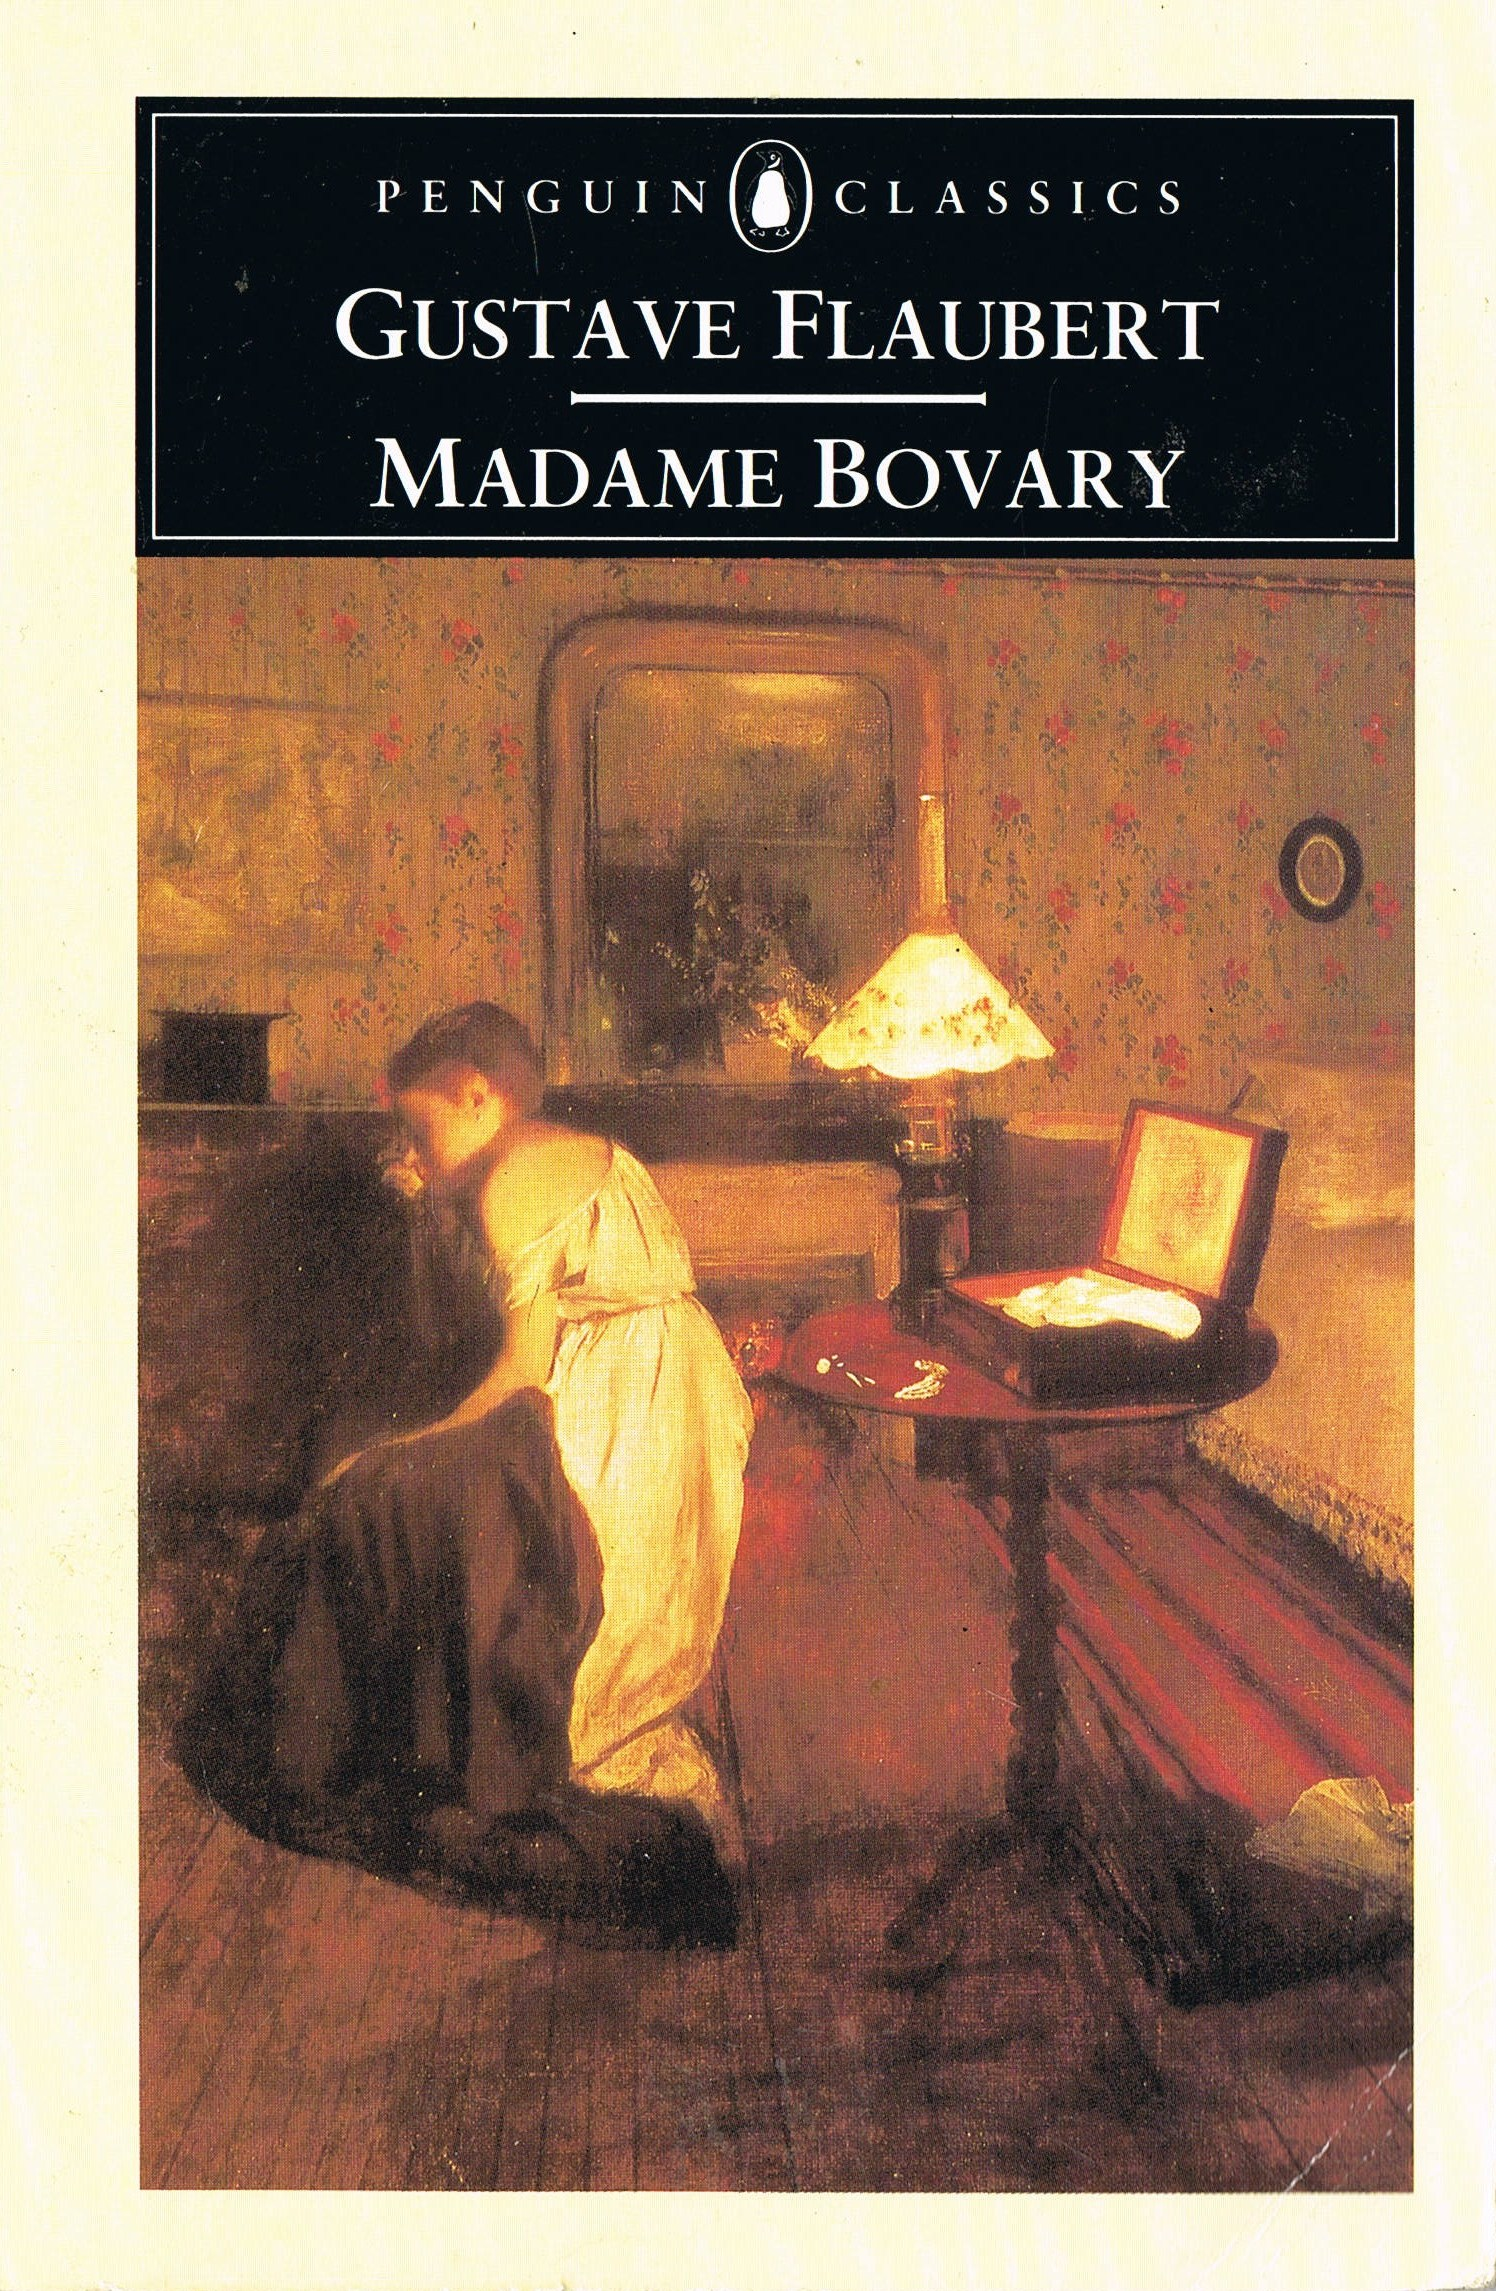 MyFrenchLife™ – MyFrenchLife.org – MyFrenchLife™ book club: March literature challenge – Gustave Flaubert, Madame Bovary